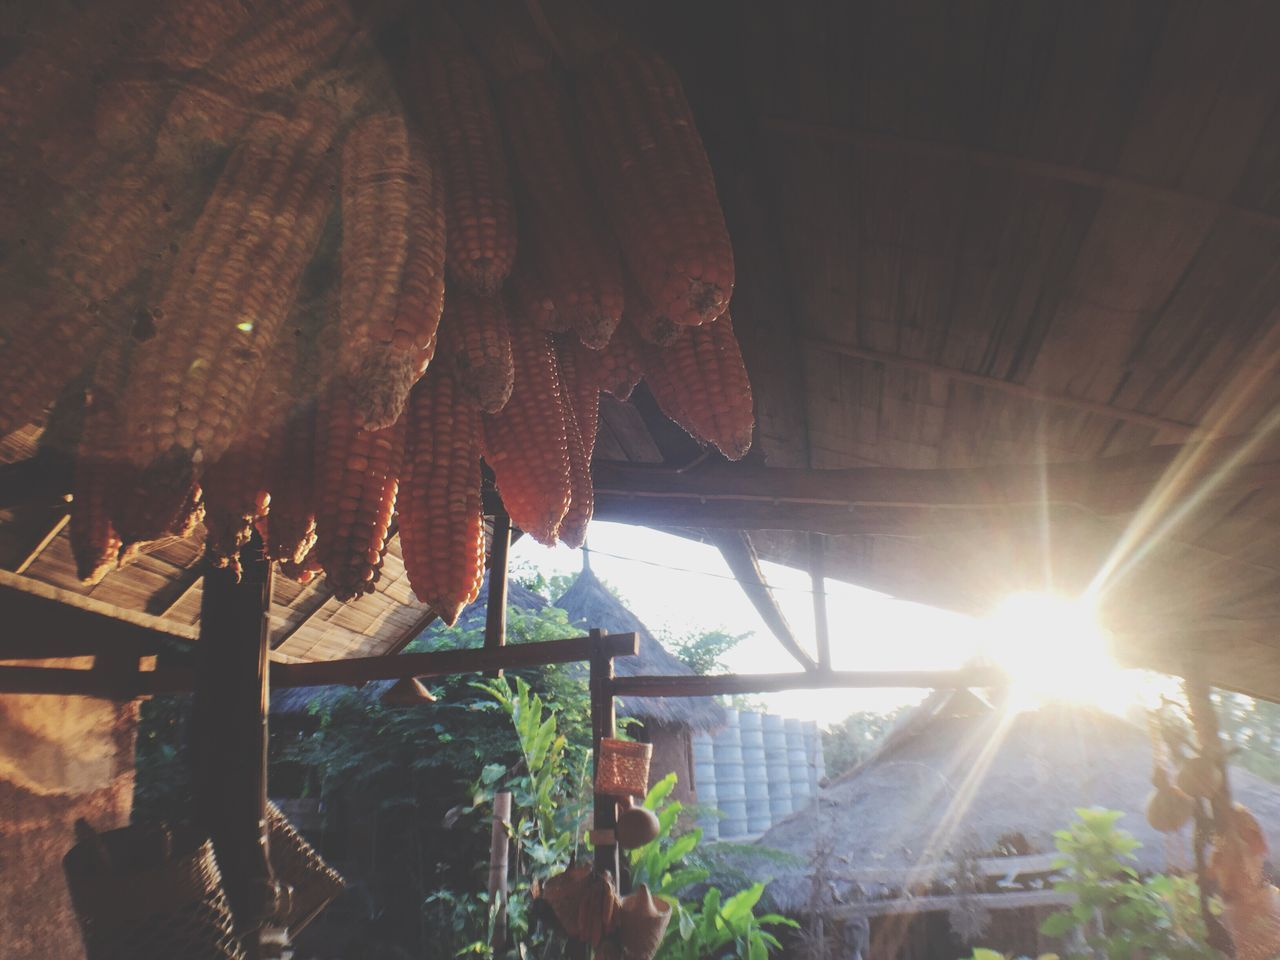 sunlight, hanging, day, sun, no people, outdoors, drying, nature, close-up, freshness